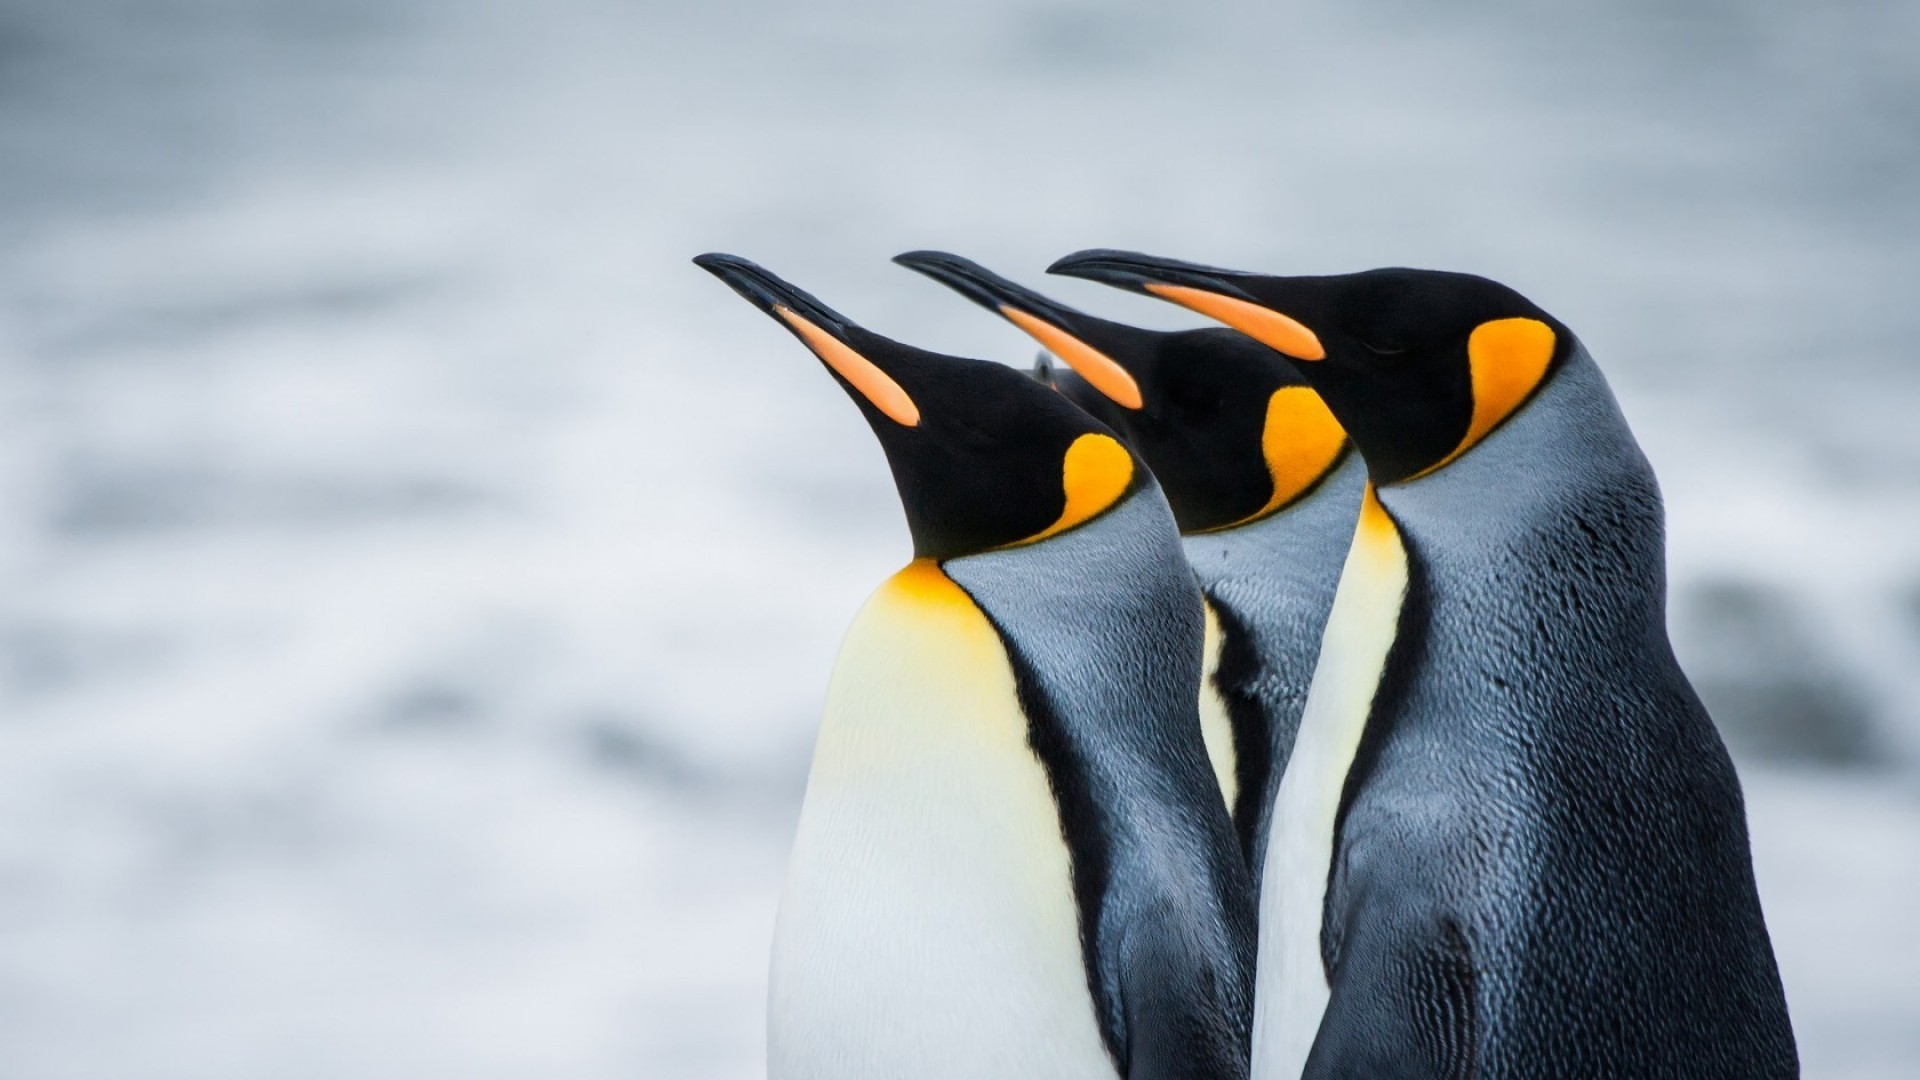 Penguin desktop wallpaper hd - photo#25